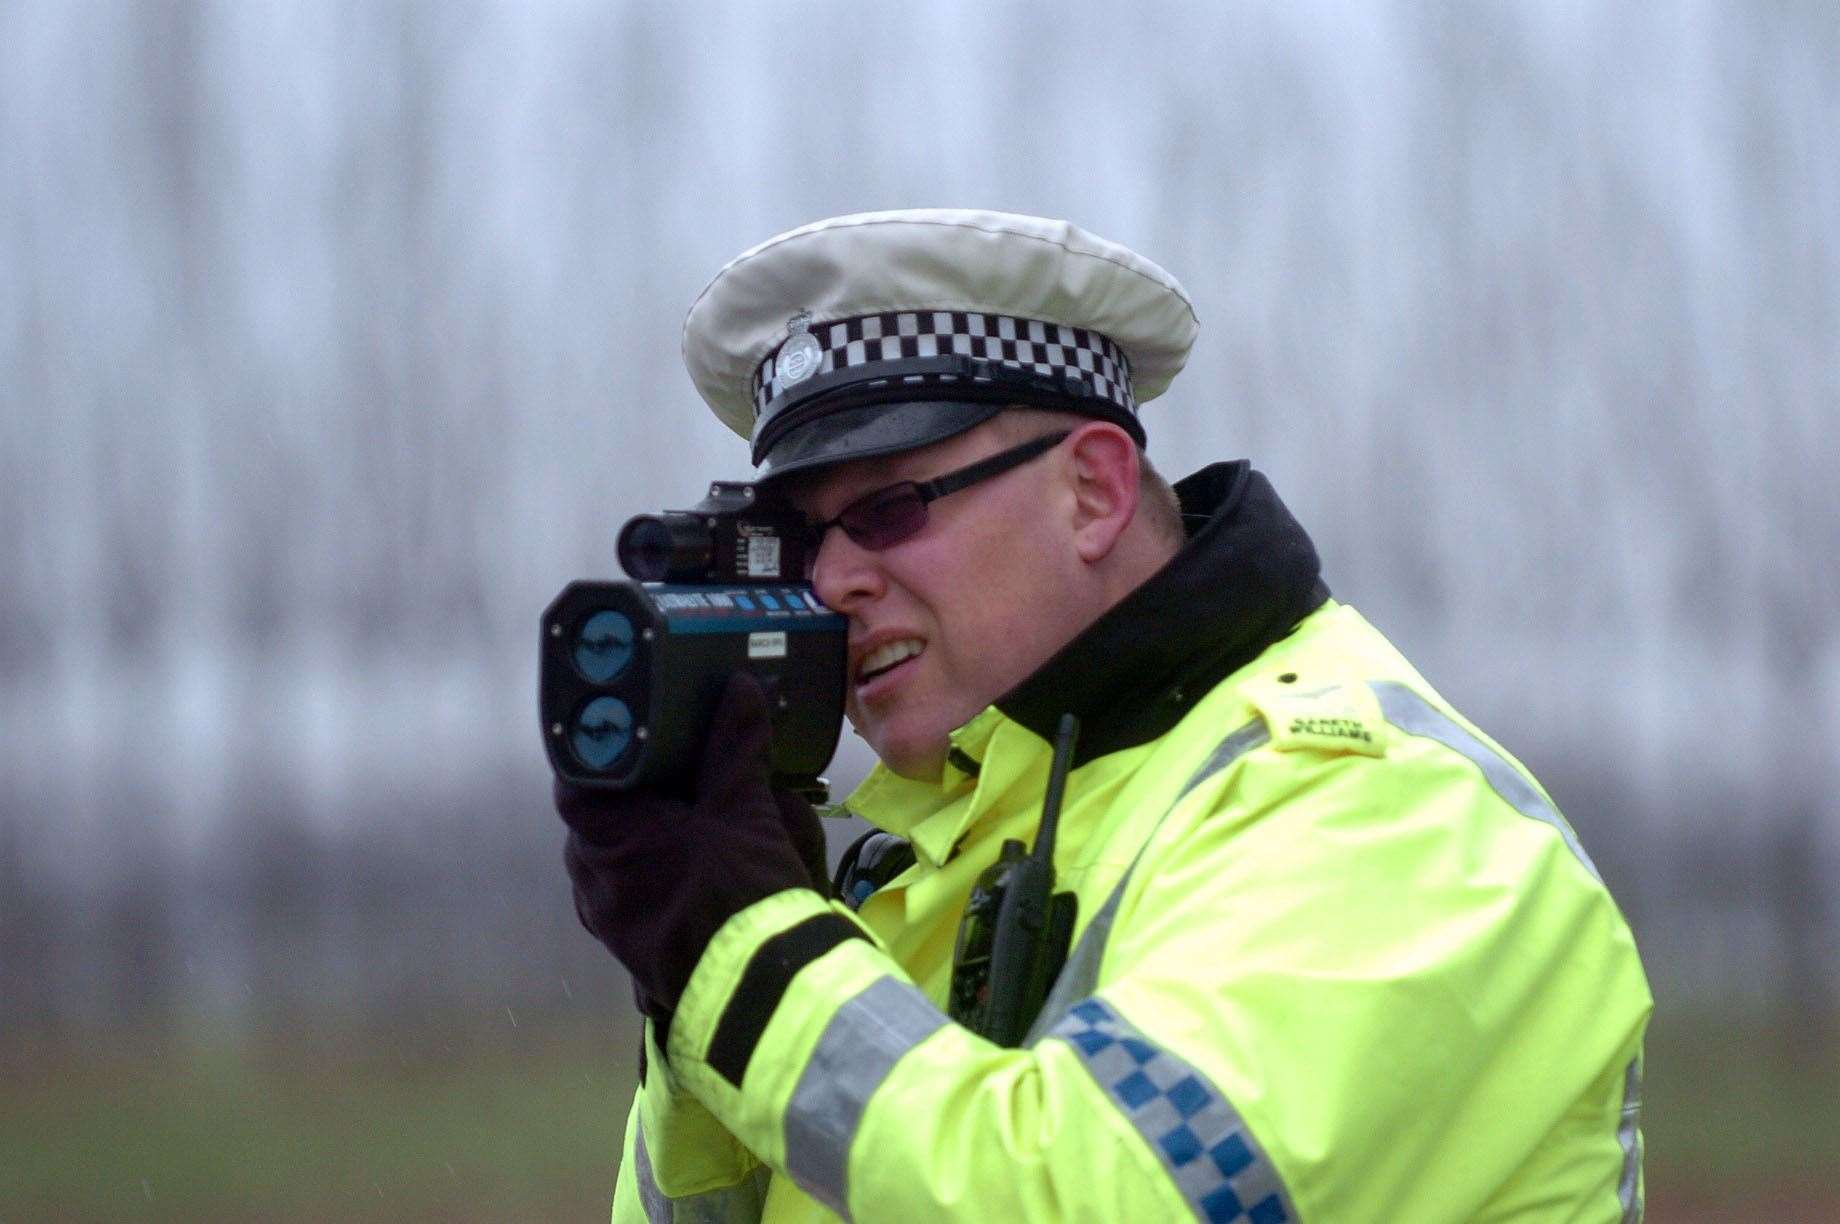 160 drivers were caught travelling in excess of 100mph in 2018